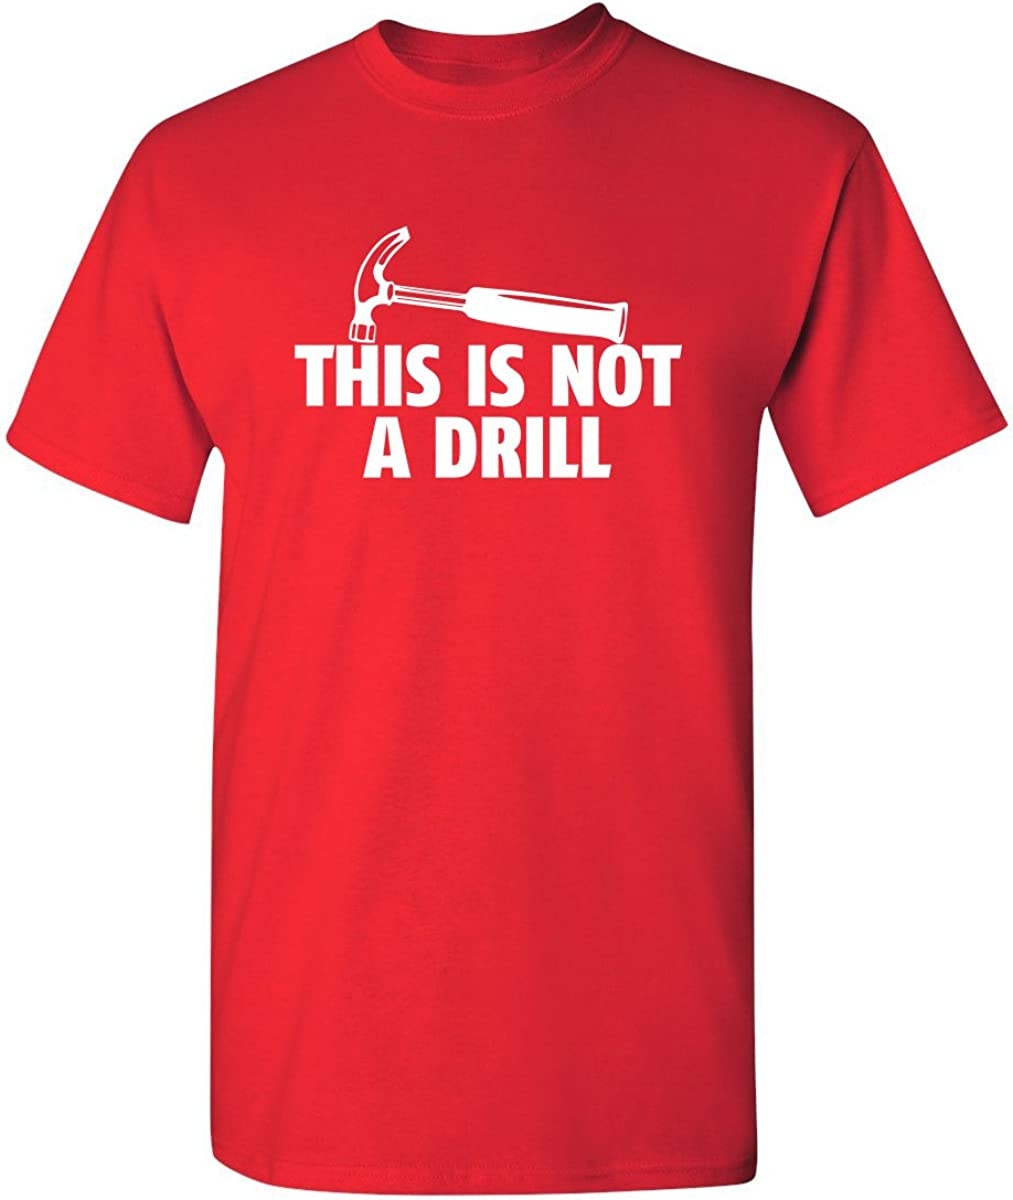 This is Not A Drill Novelty Tools Hammer Builder Woodworking Mens Funny T Shirt